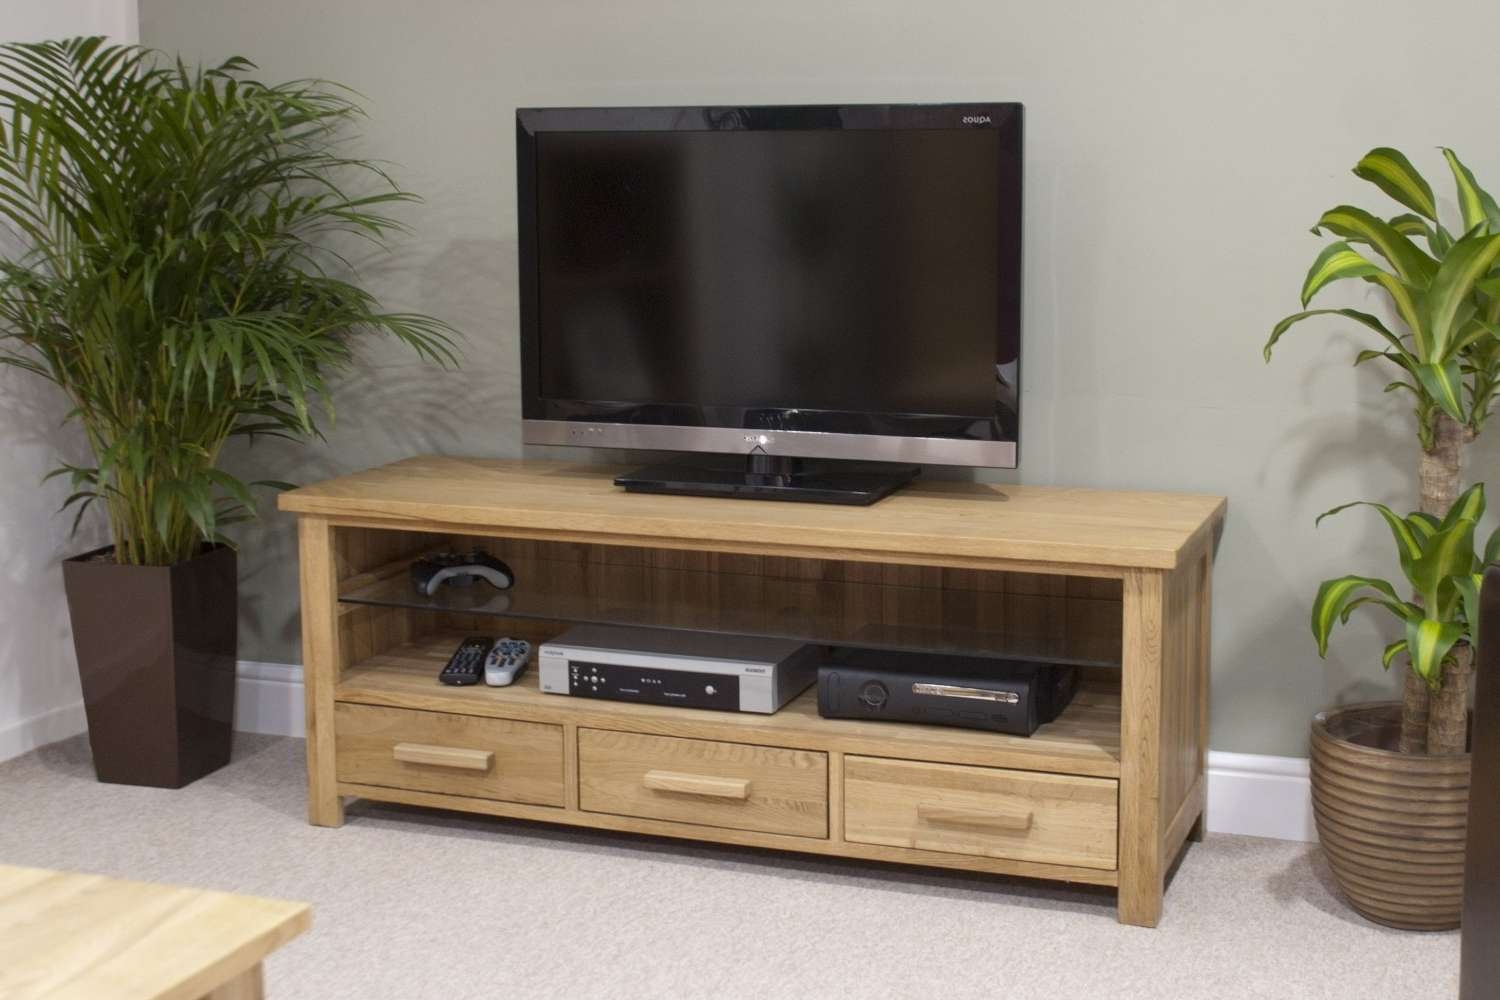 Eton Solid Oak Living Room Furniture Widescreen Tv Cabinet Stand With Regard To Widescreen Tv Cabinets (View 15 of 20)